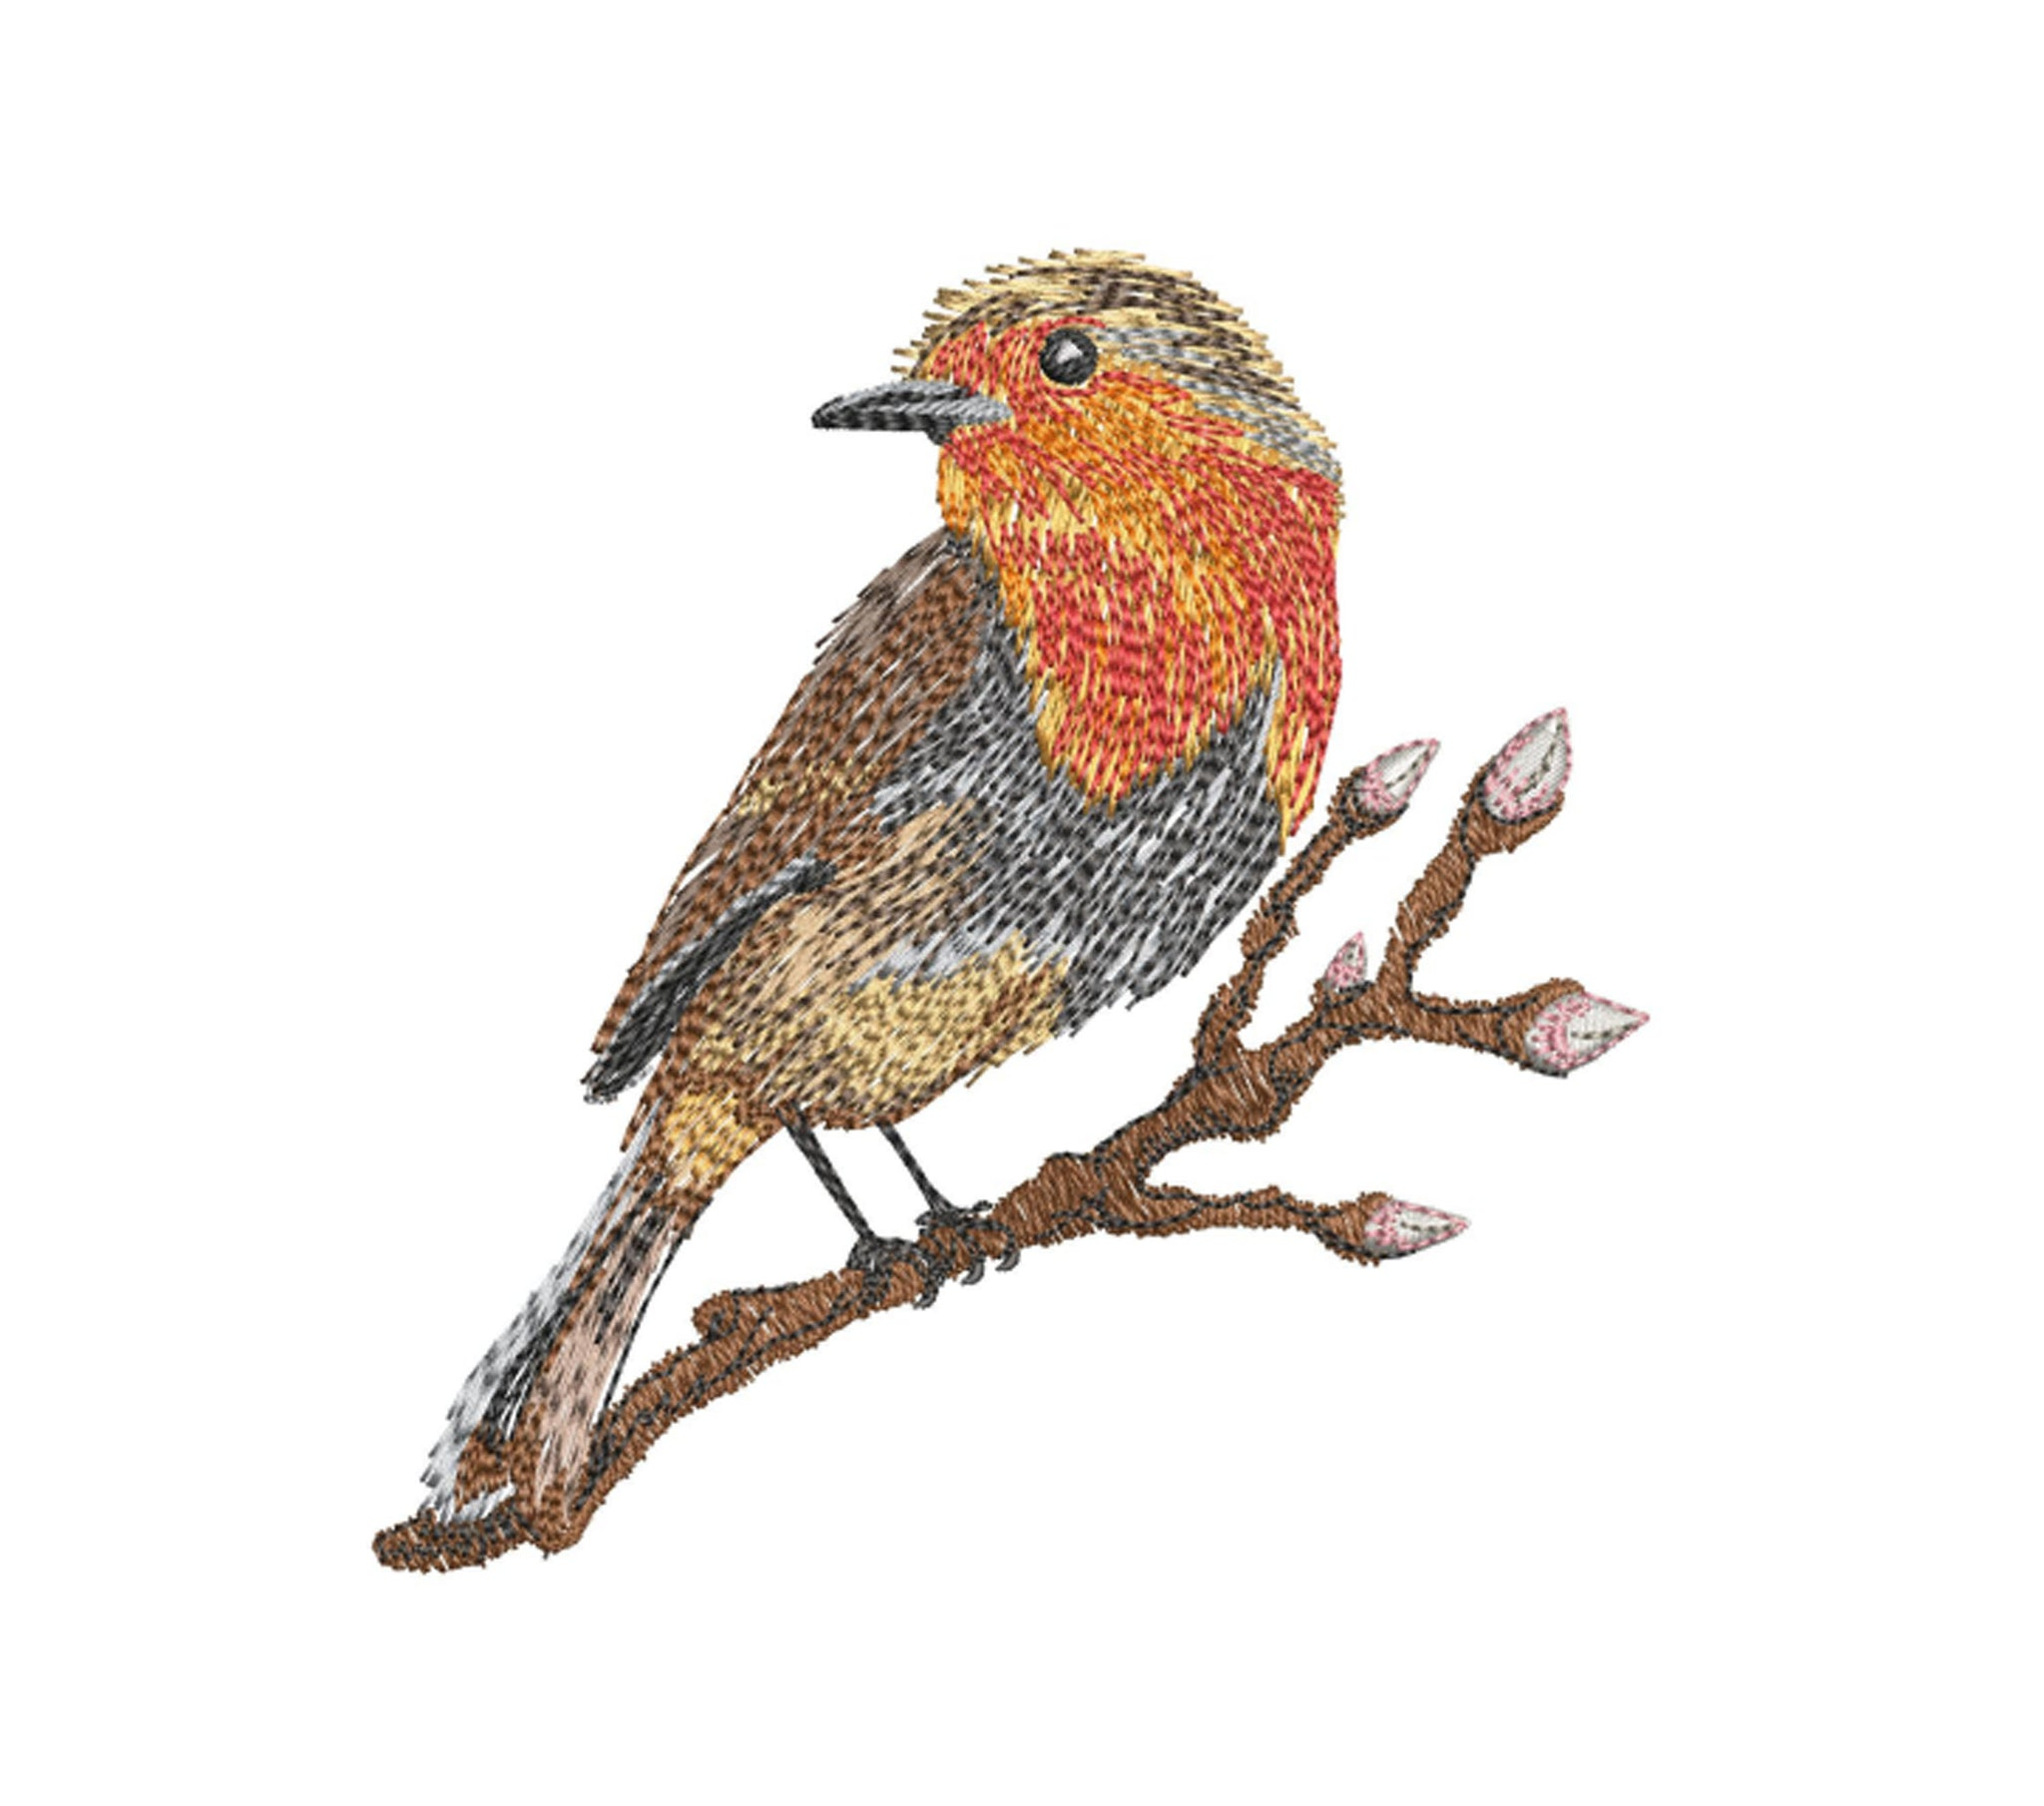 Robin 6x10 Embroidery Design (150.4mm by 145.5 mm)